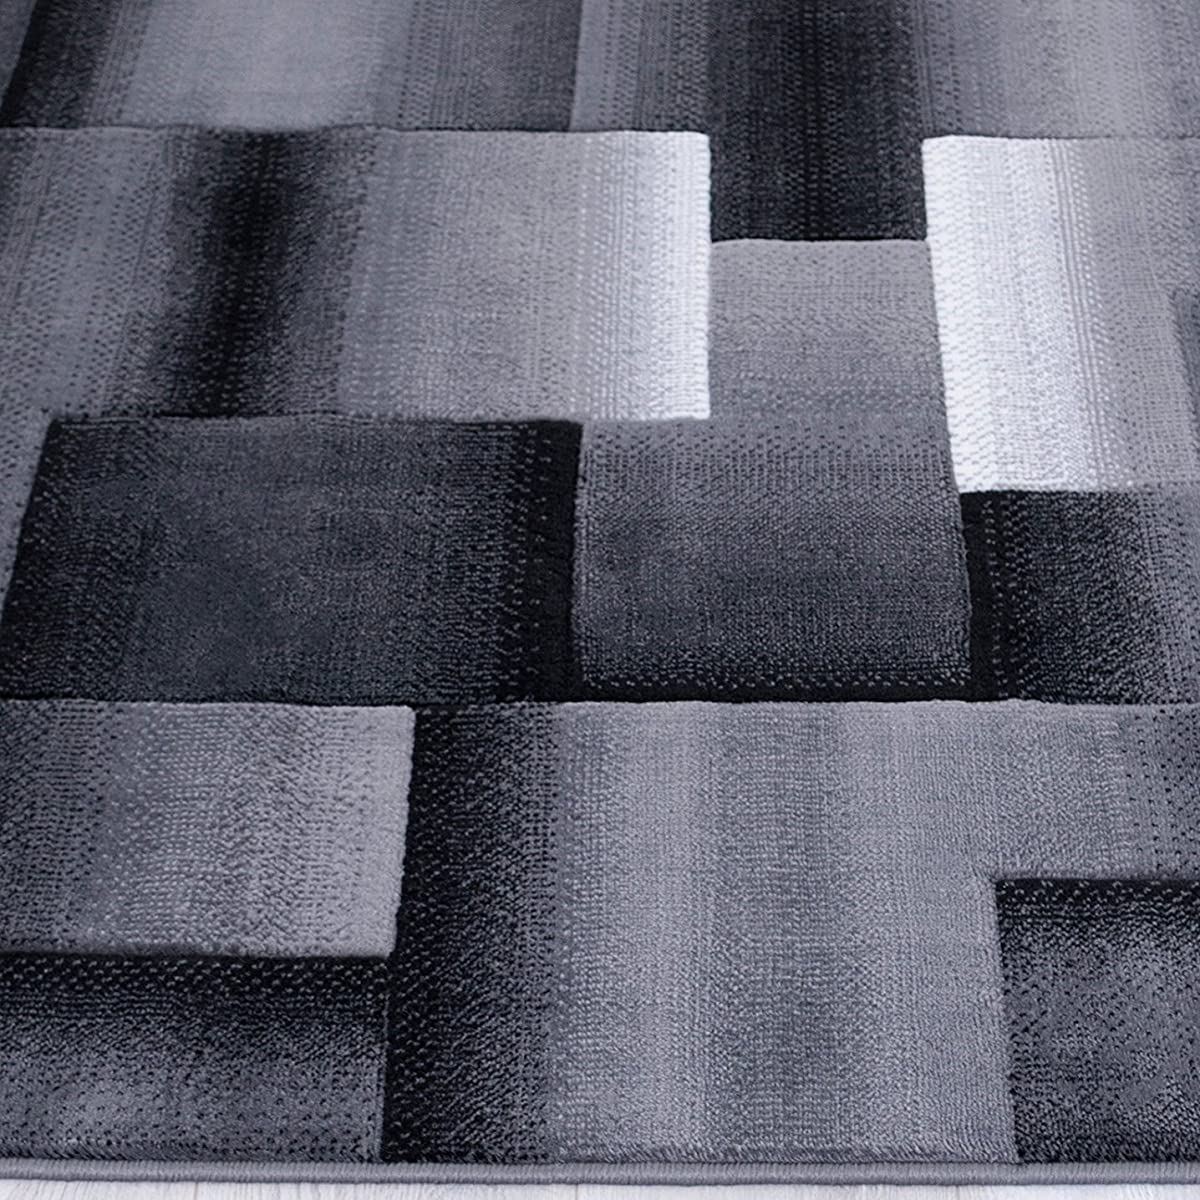 Handcraft Rugs Silver/Black and Gray Abstract Geometric Modern Squares Pattern Area Rug 5 ft. by 7 ft.